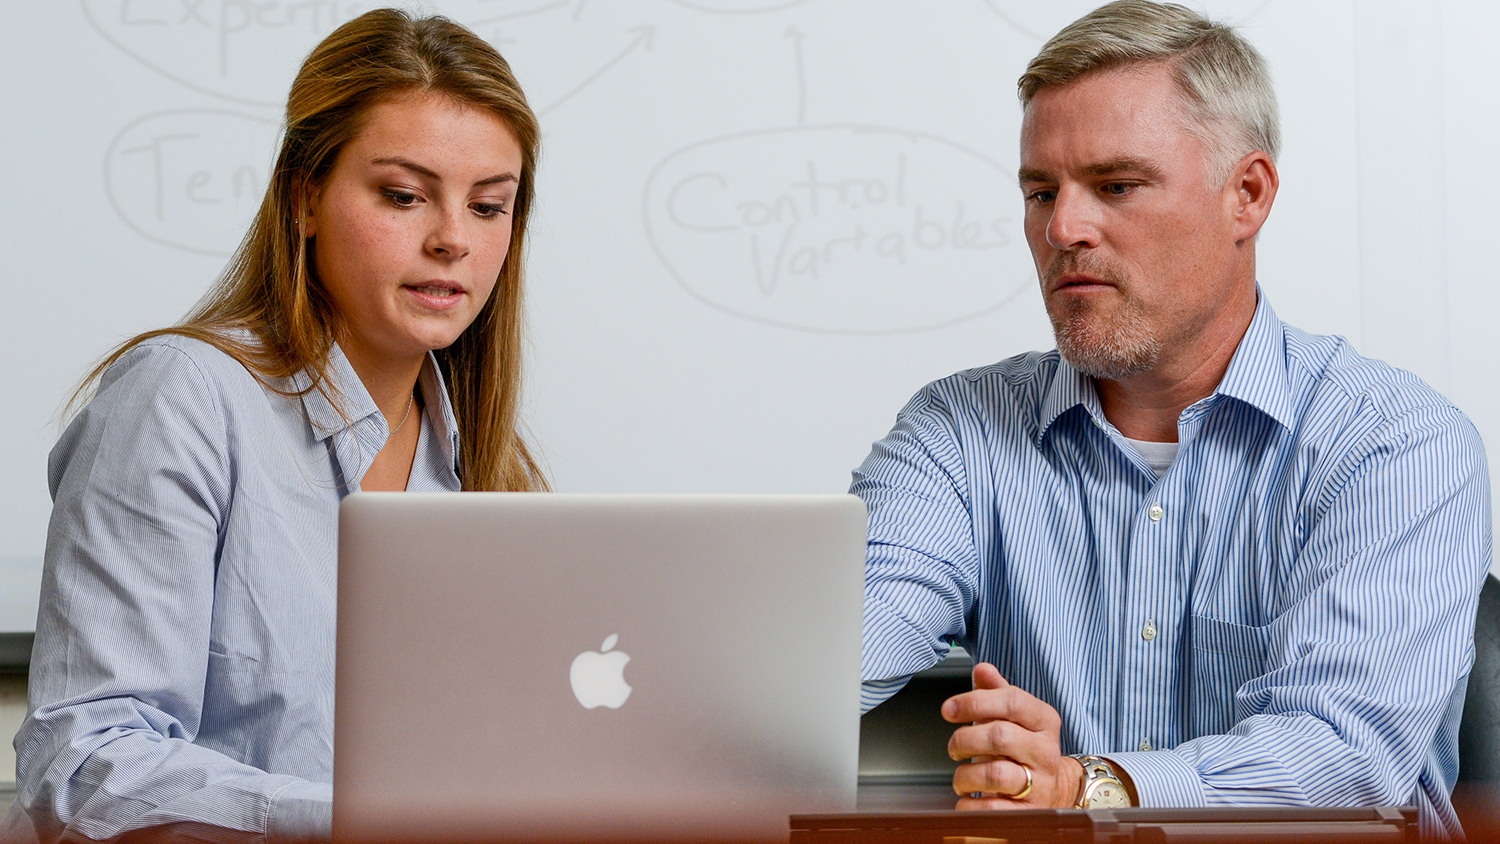 Photo of Sadie Rockefeller and Joe Brazel in discussion about a research project.